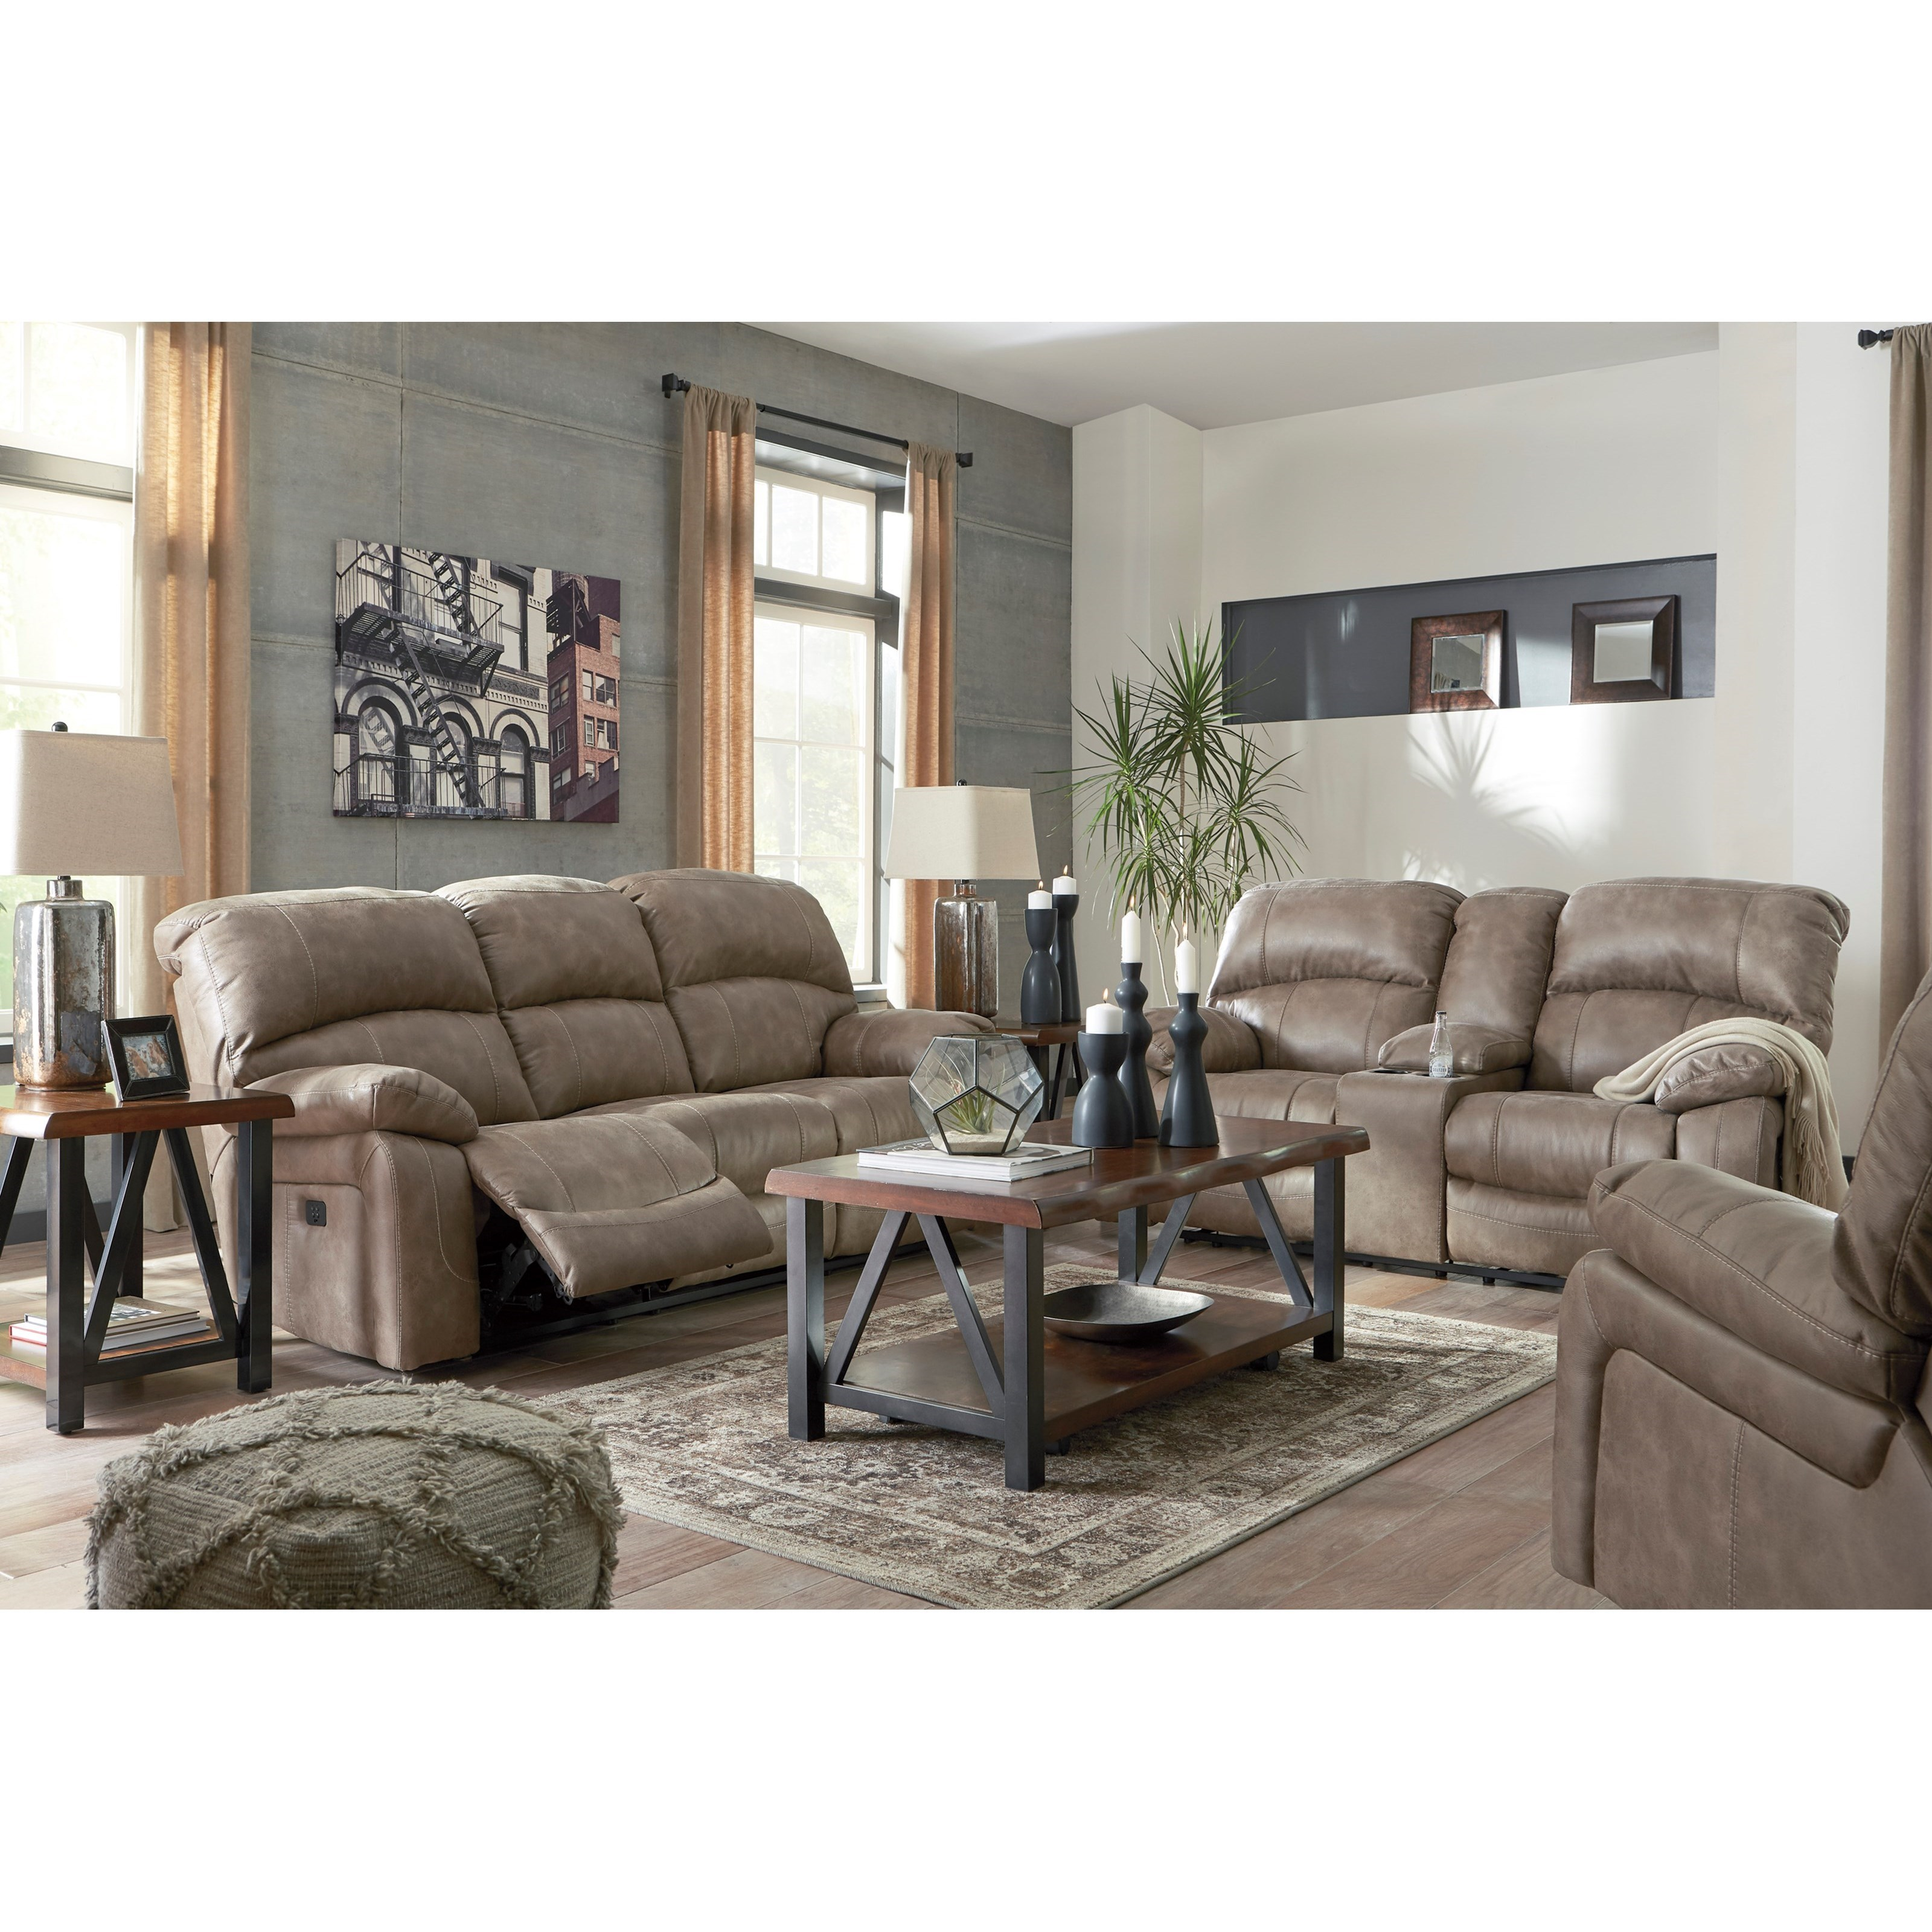 Signature Design By Ashley Dunwell Reclining Living Room Group